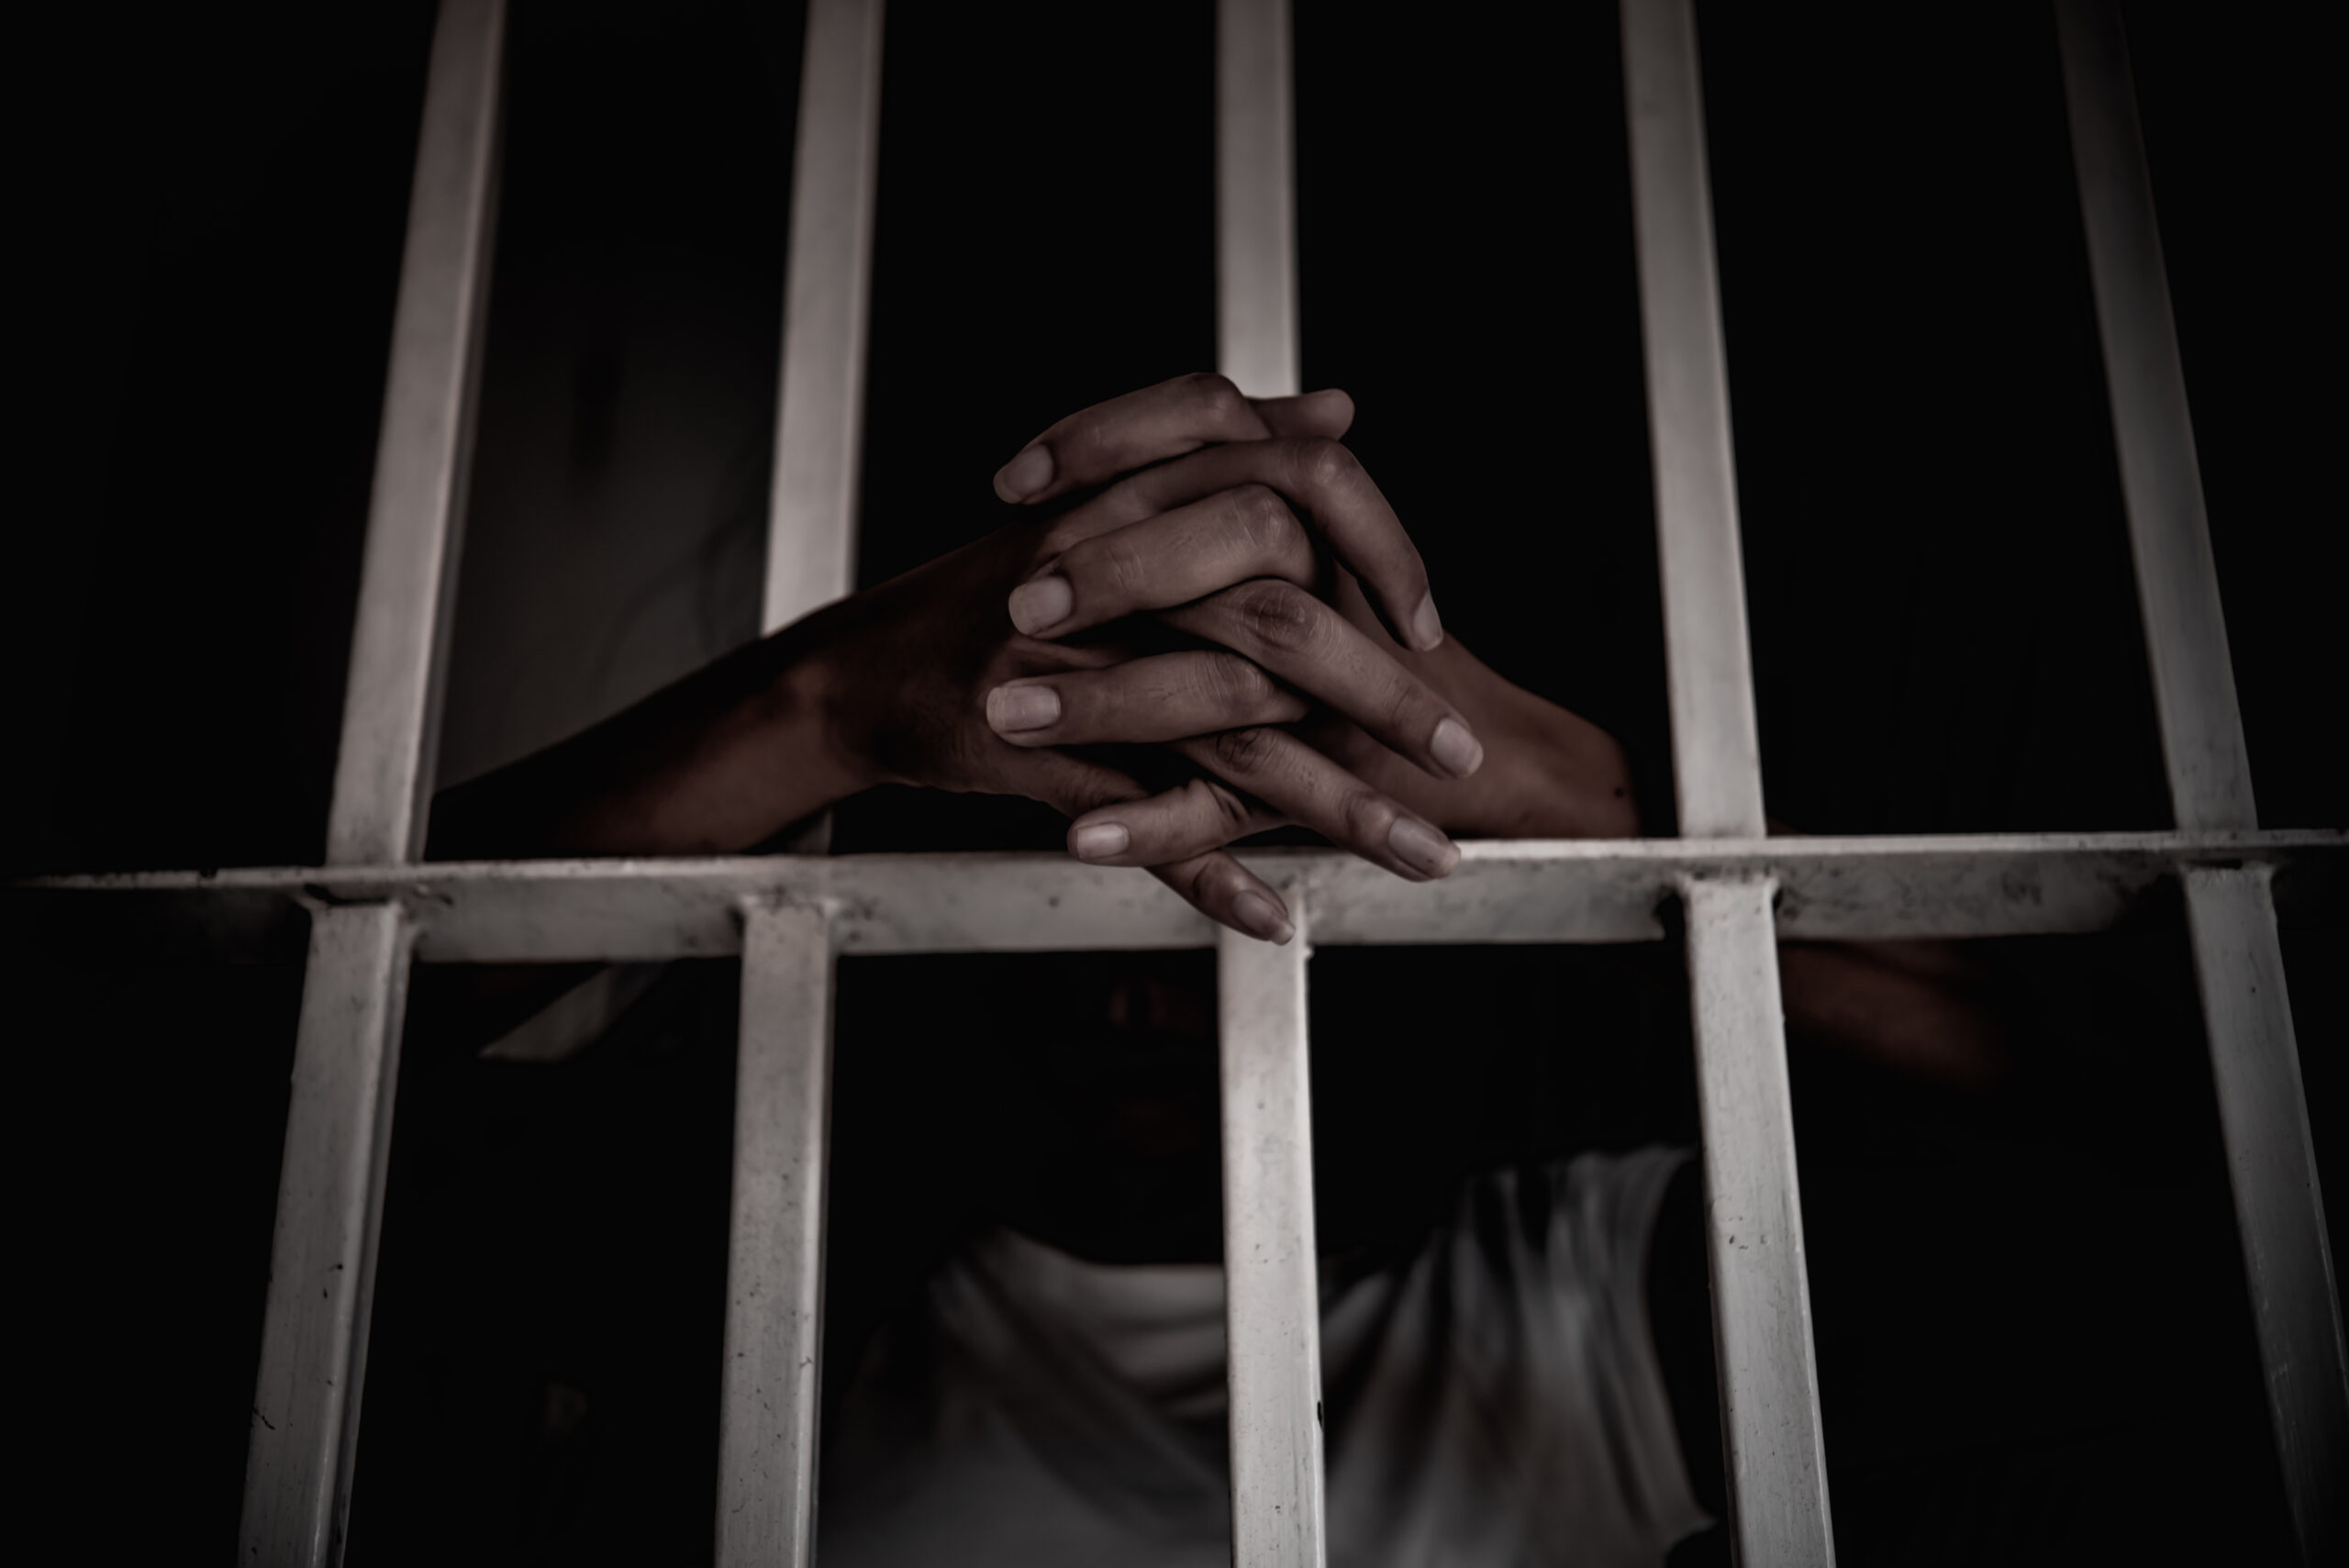 In five years, 786 people died in Louisiana's jails and prisons, a new report finds